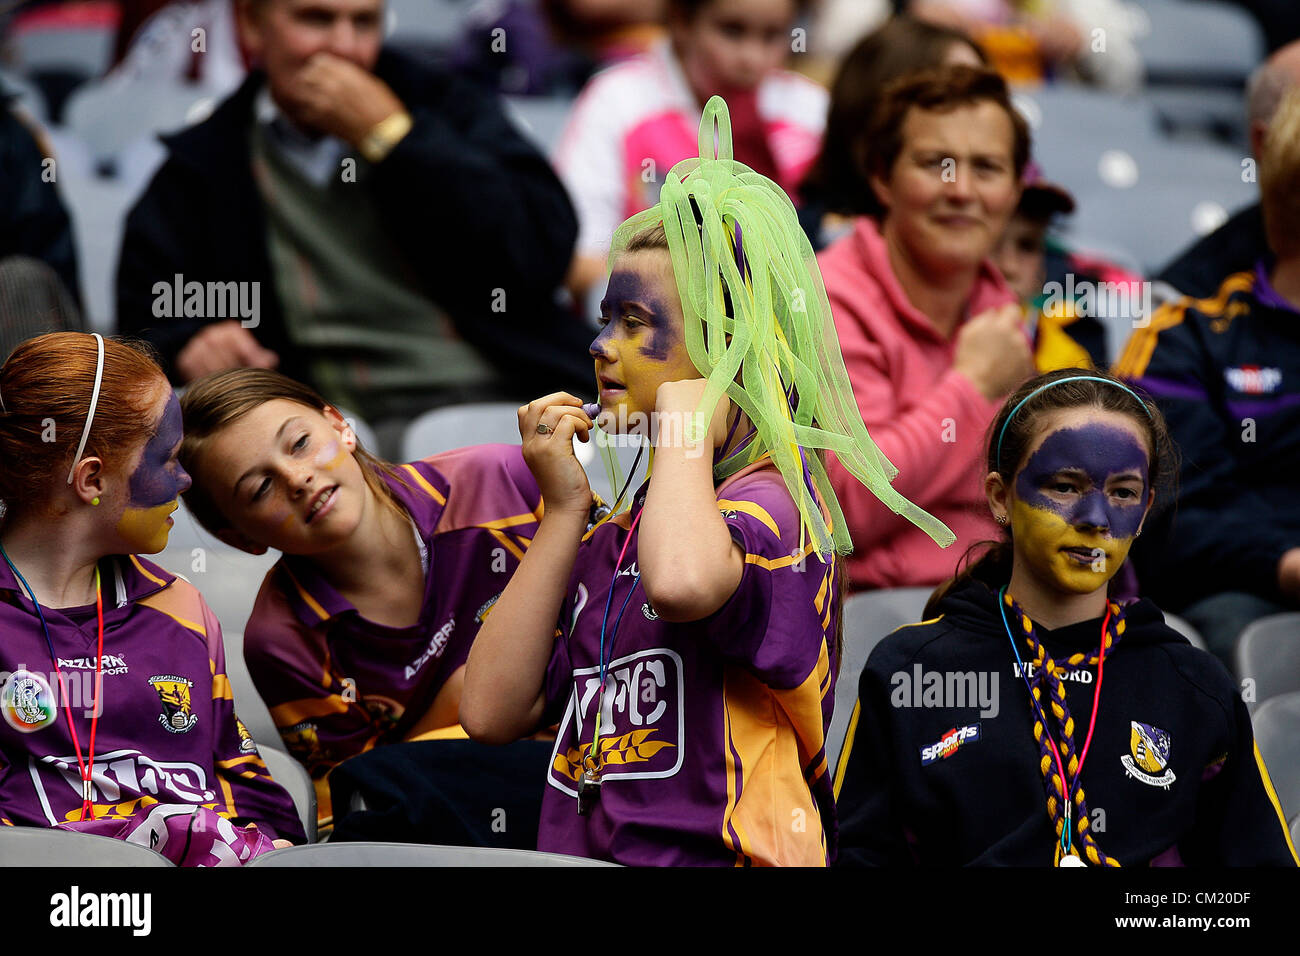 REPRO FREE - 16 September 2012 - Croke Park,  DUBLIN- Ireland - Wexford's fans getting the makeup before todays - Stock Image